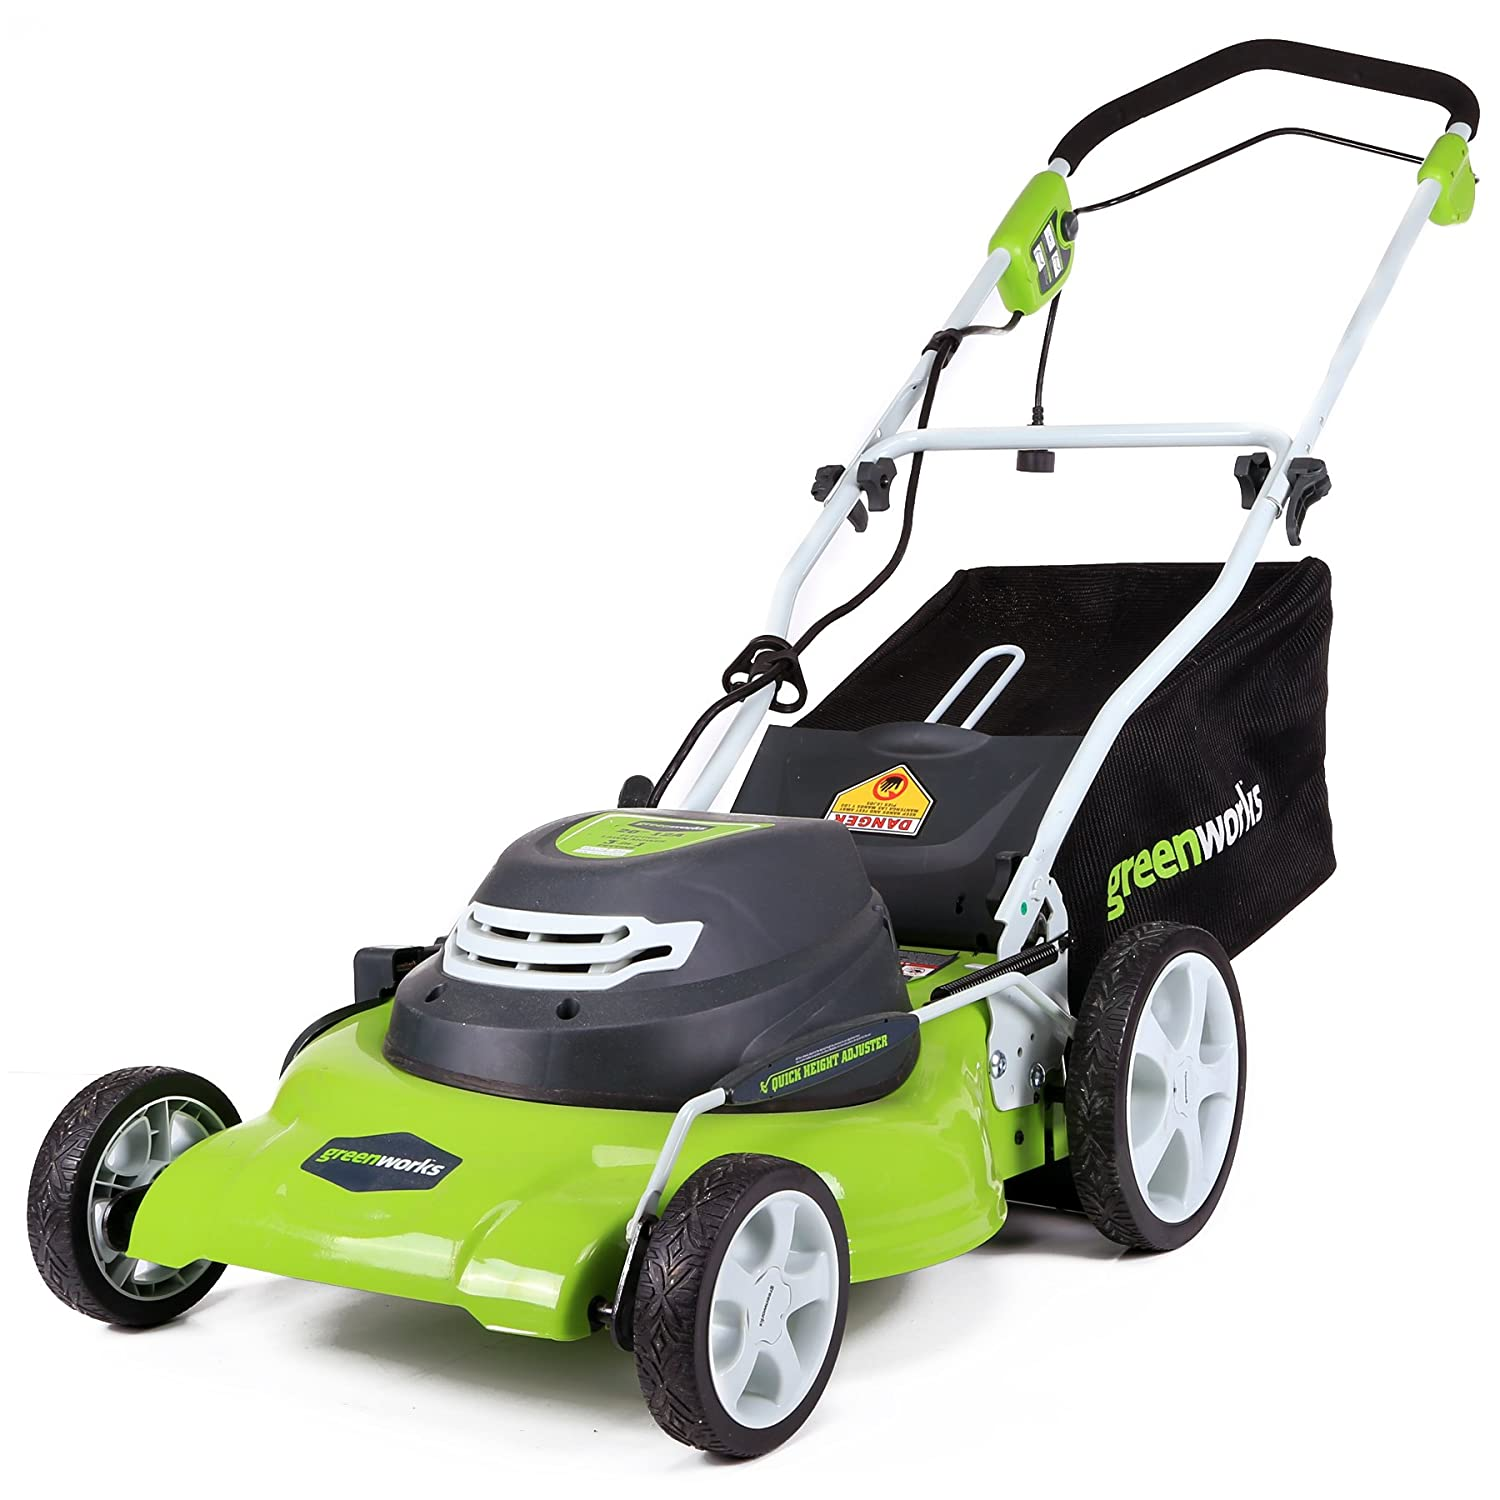 Lawn mower tractor walk behind lawn mowers riding lawn mowers greenworks 20 inch 12 amp corded lawn mower 25022 fandeluxe Image collections